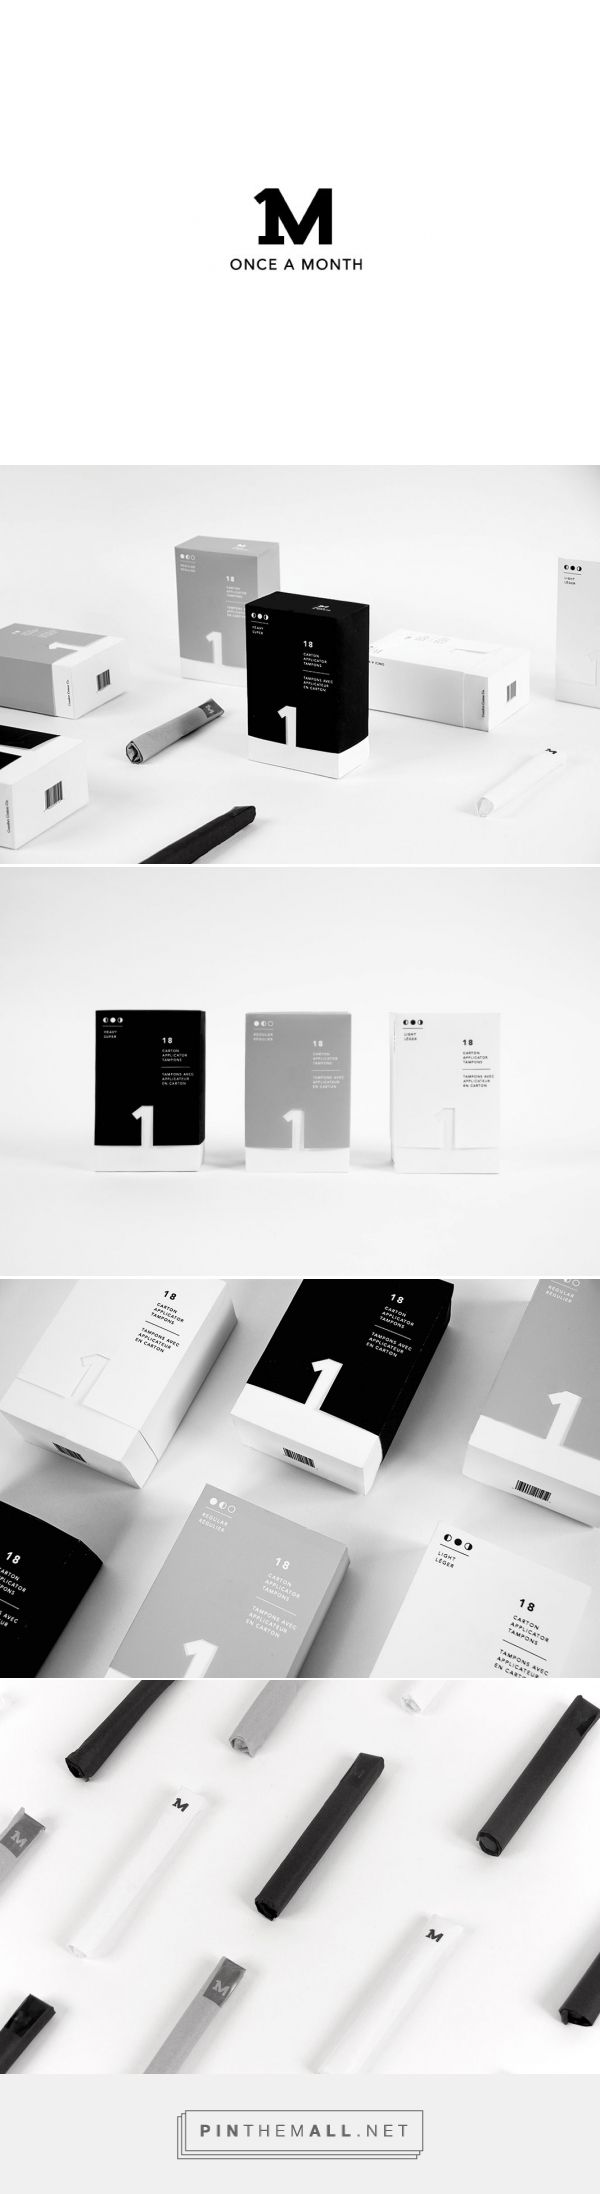 Once A Month Tampon packaging design concept by Olivia Chan (Canada) - http://www.packagingoftheworld.com/2016/09/once-month-tampon-packaging-student.html